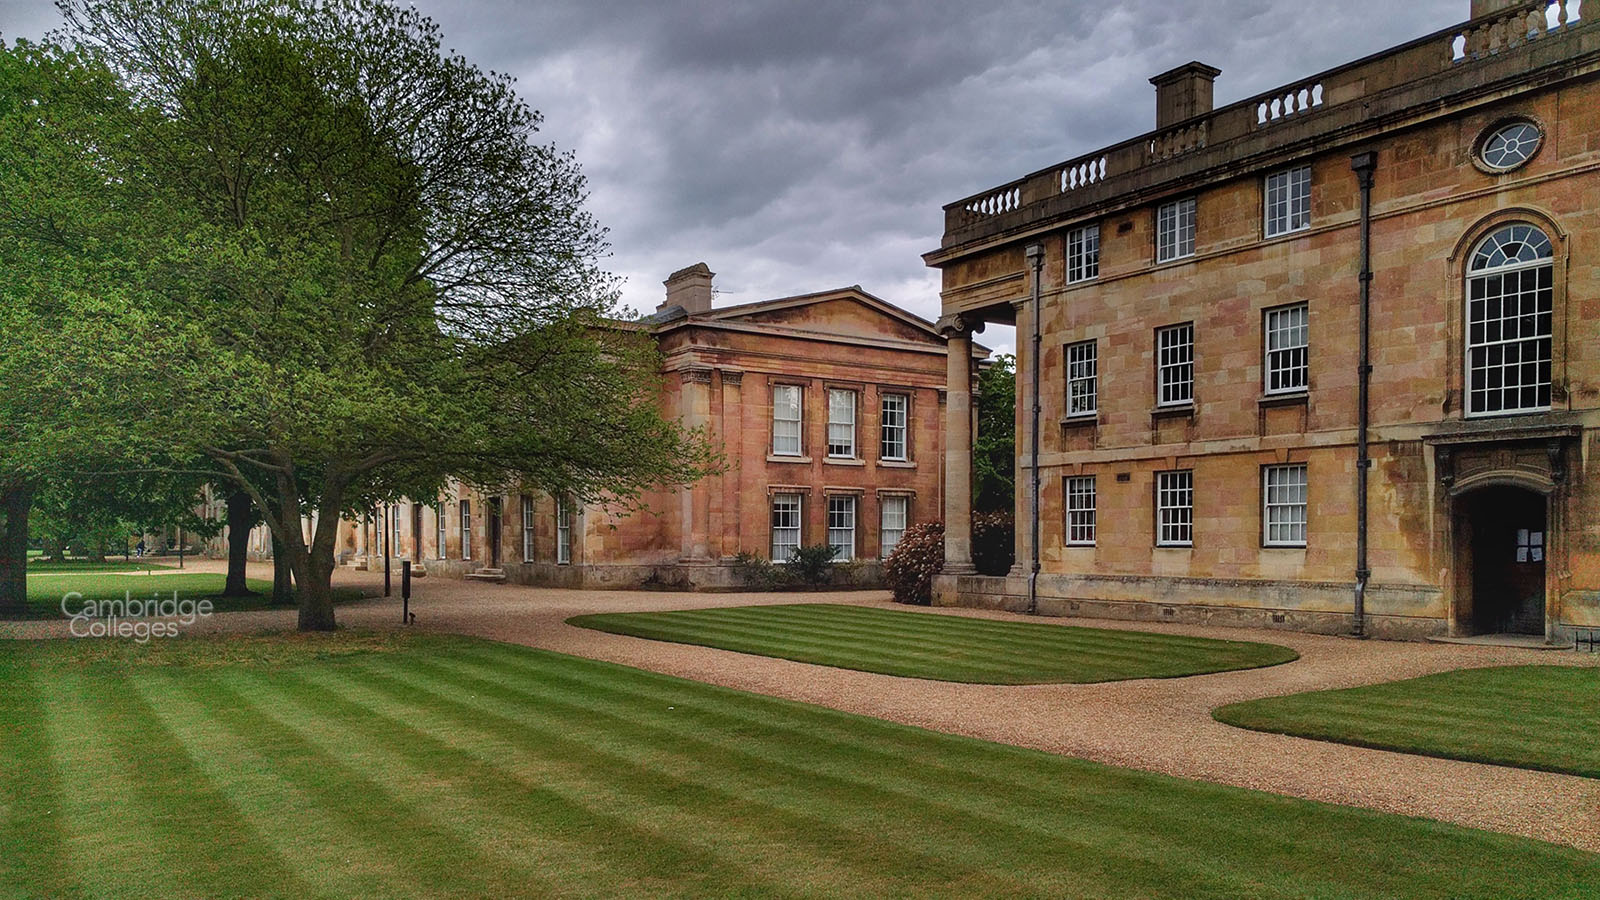 Downing college grounds